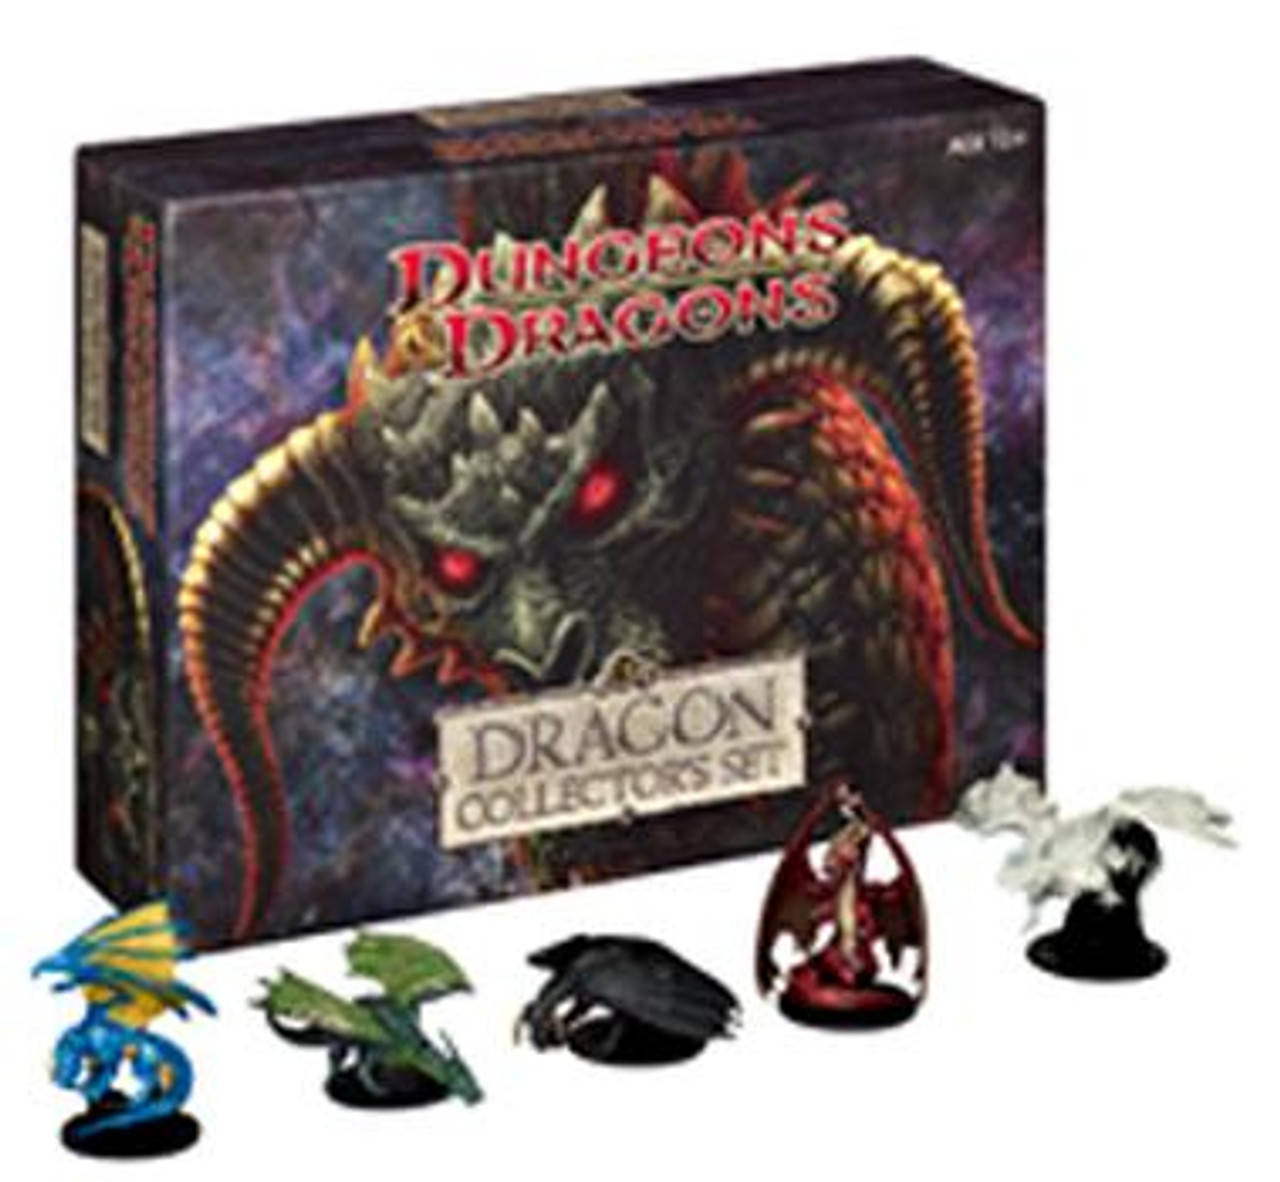 Dungeons & Dragons Miniatures Limited Edition Dragon Collector's Set